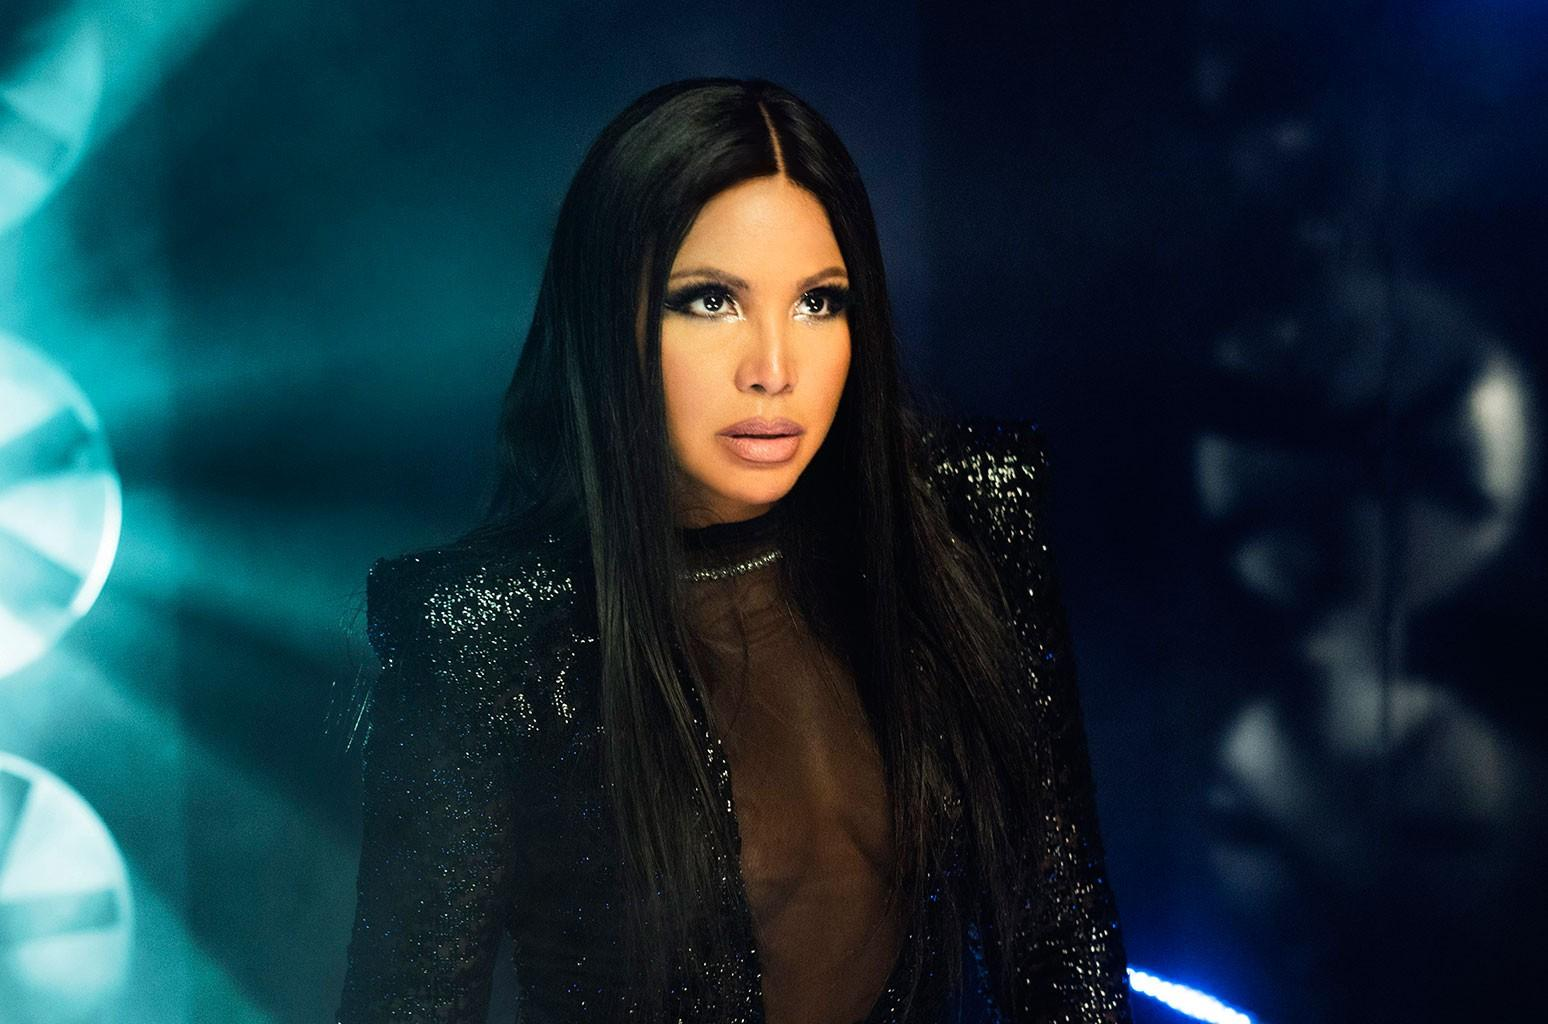 Toni Braxton Sends Love To Fans For Christmas - See Her Video